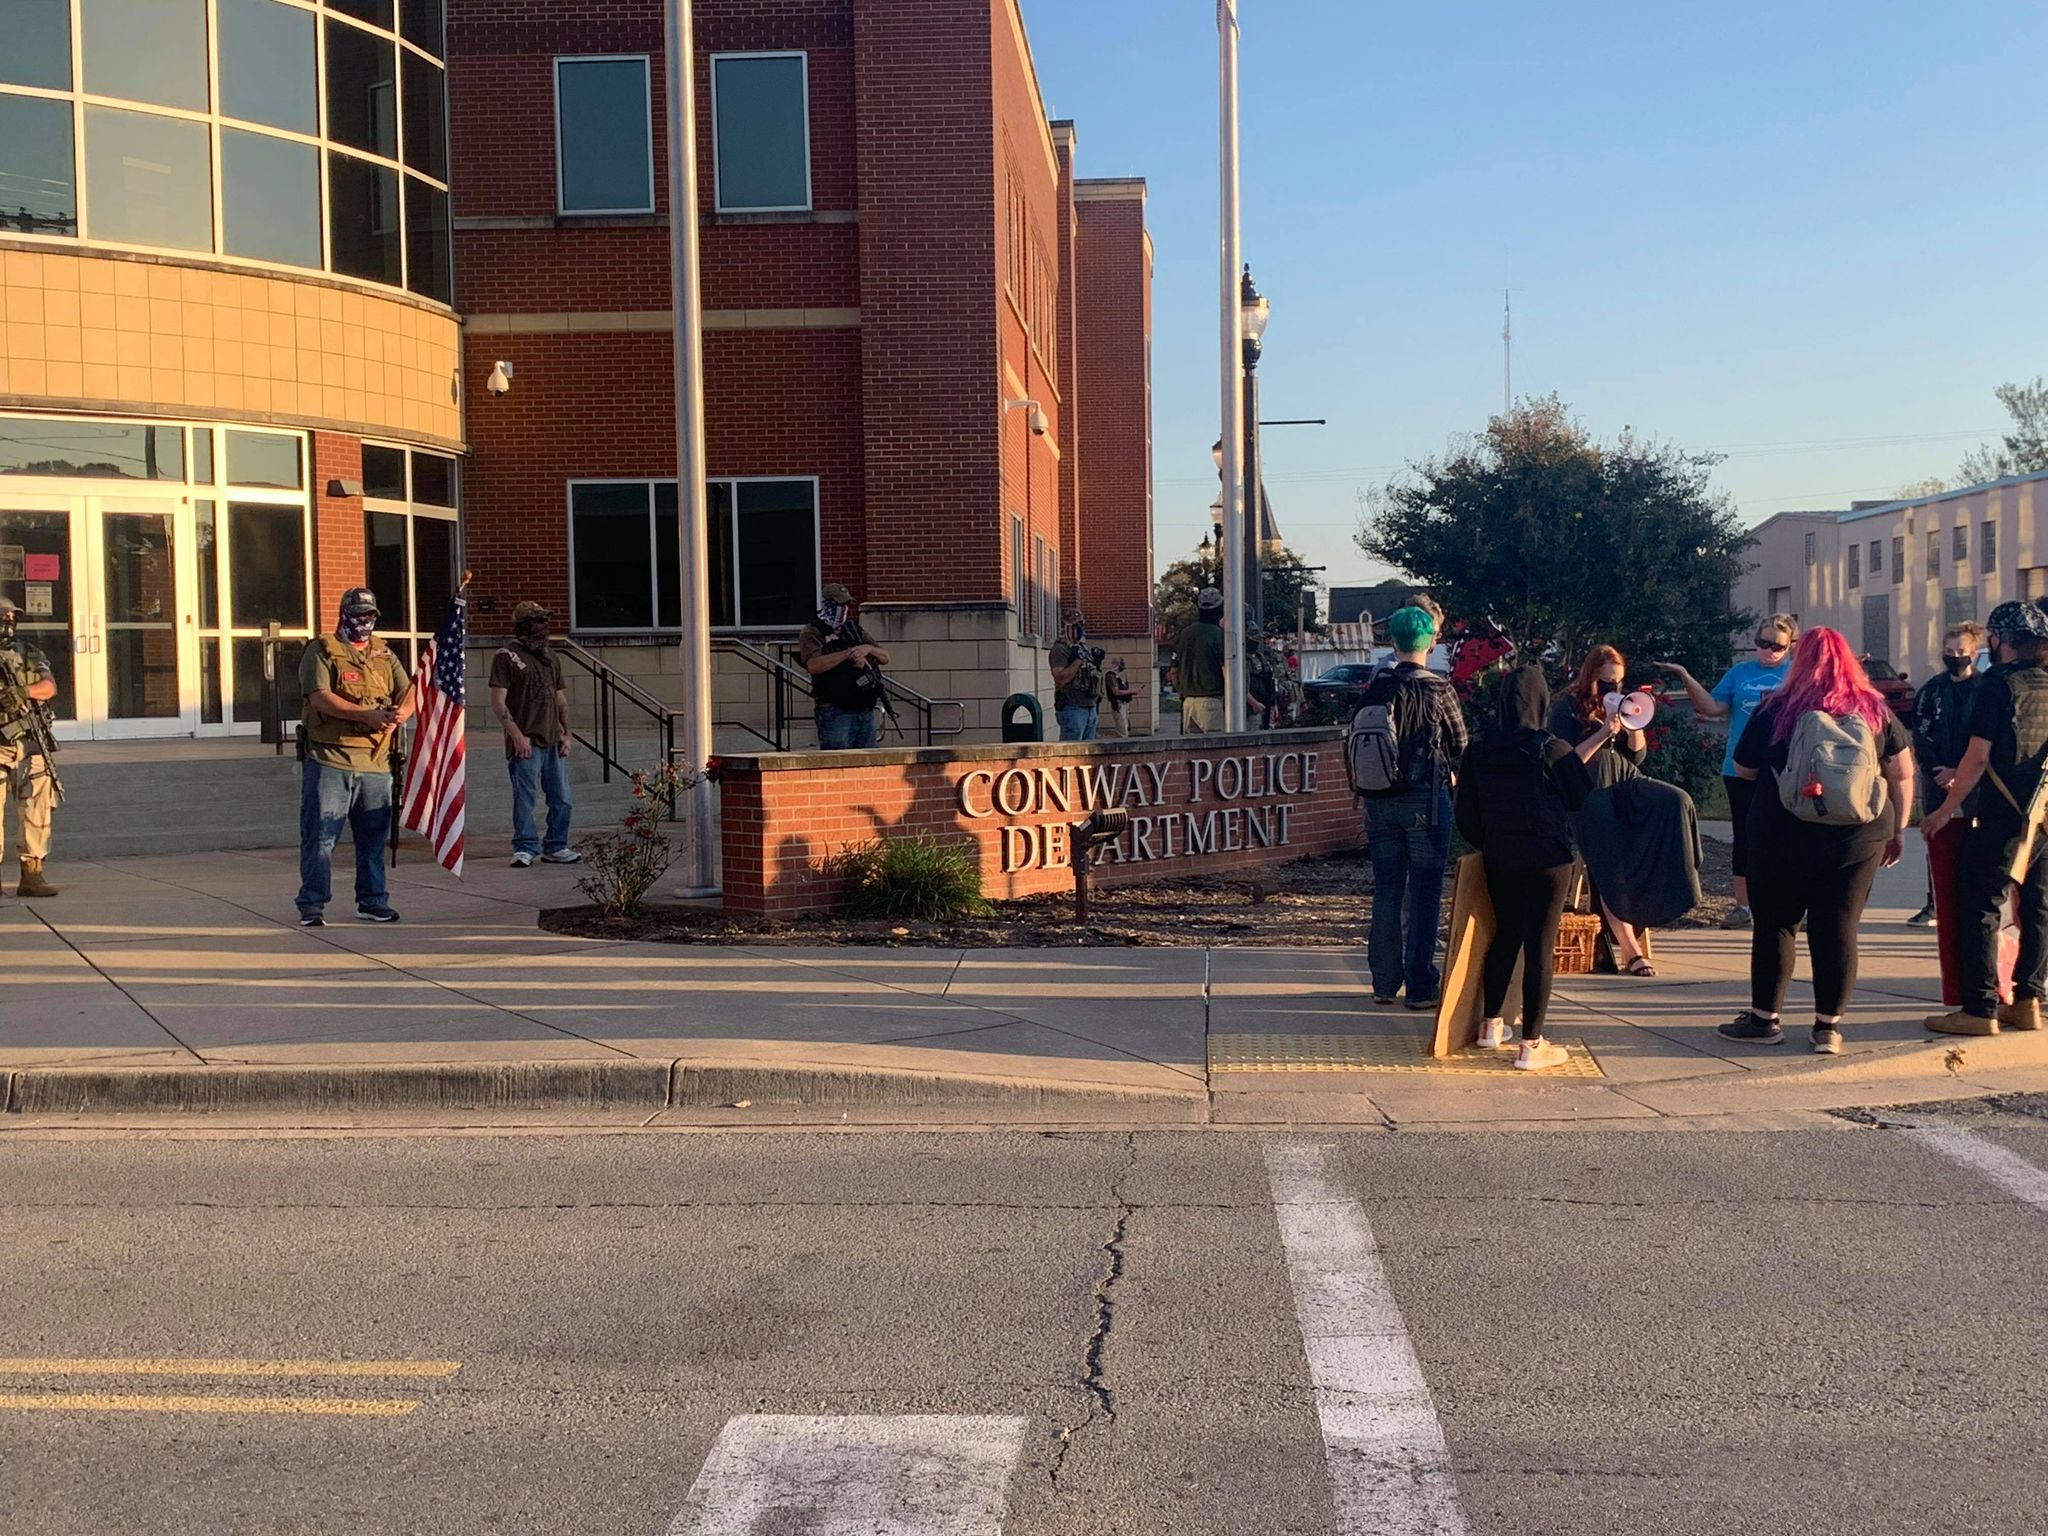 Protests in Conway